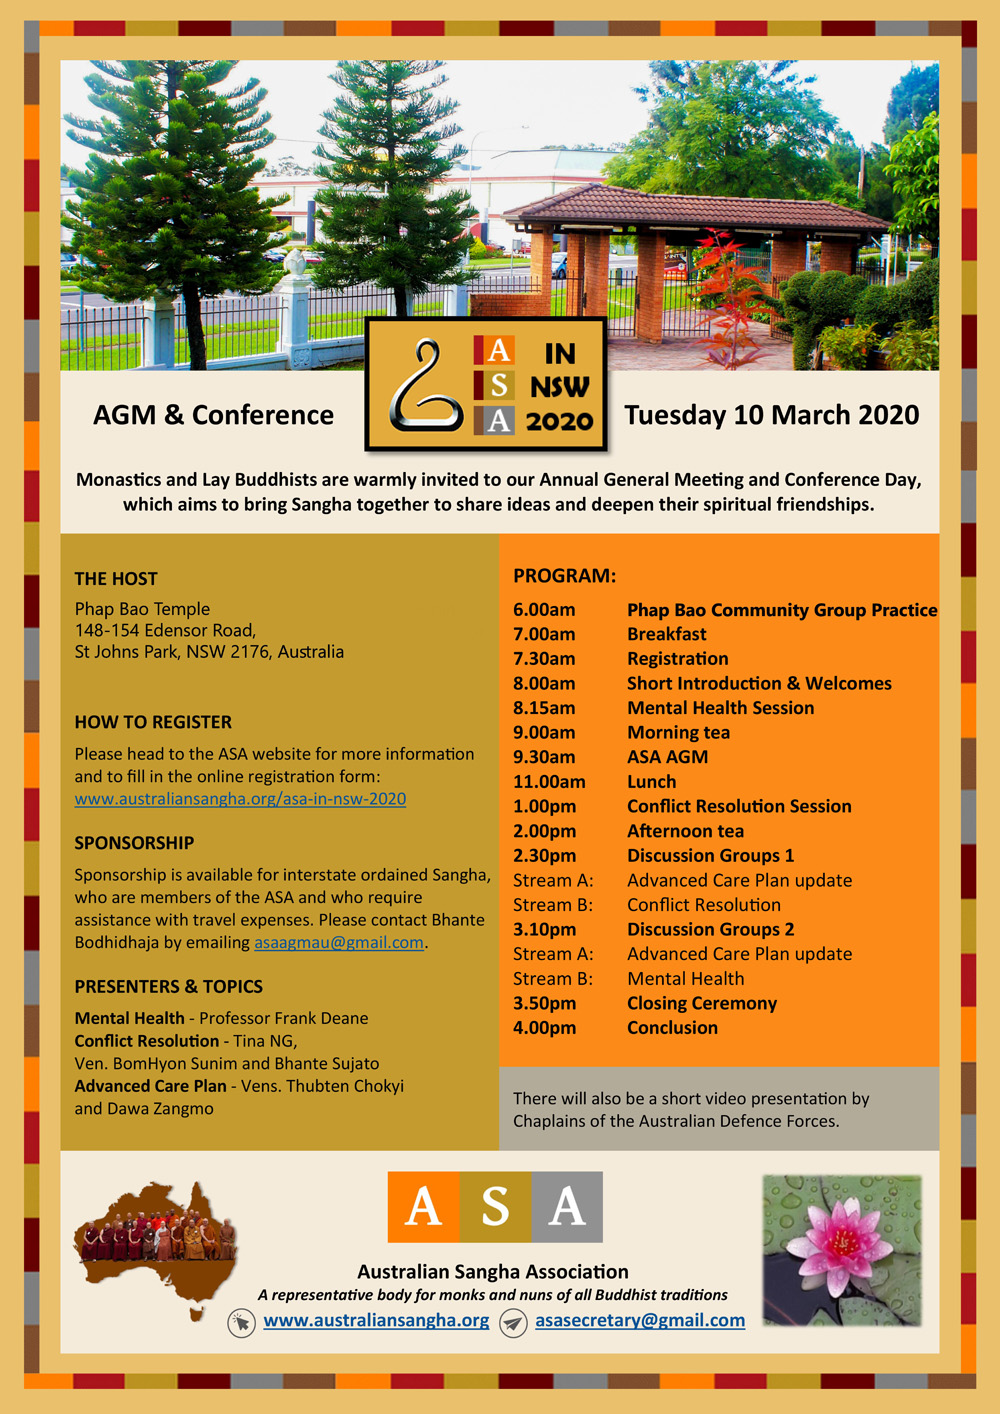 asa-in-nsw-2020-flyer-new-venue